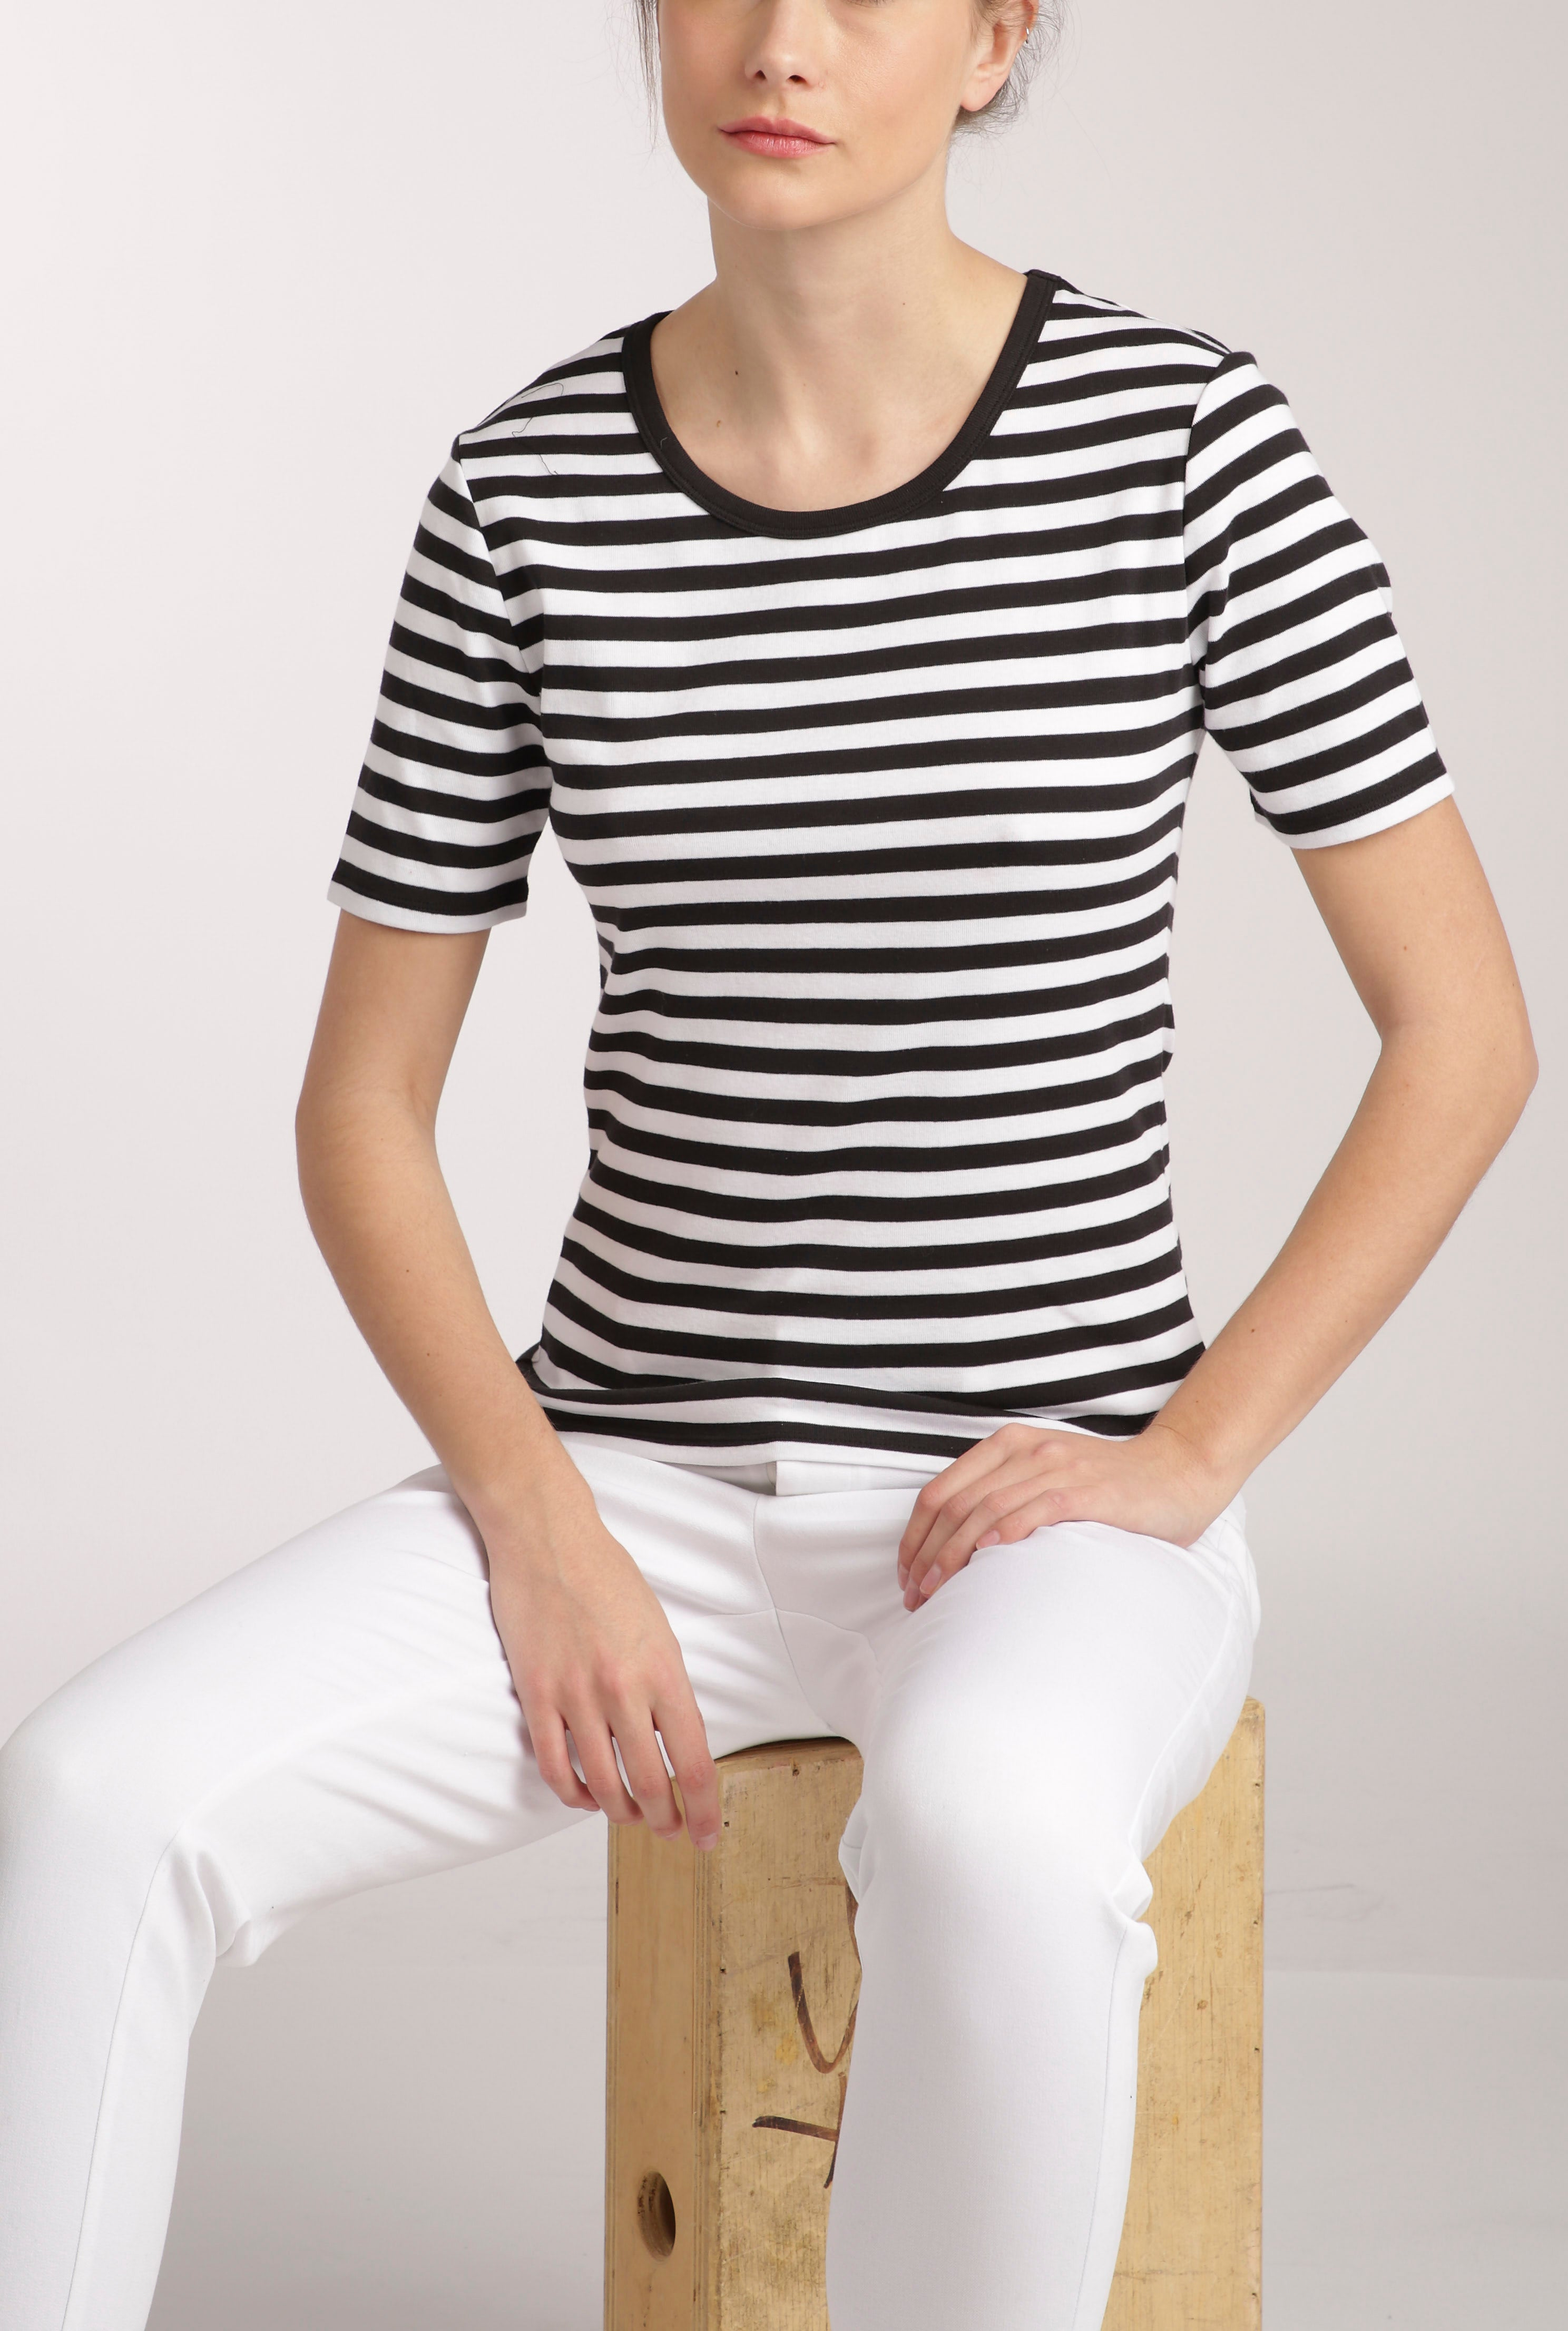 Essential Crew Tee - Black/White Stripe